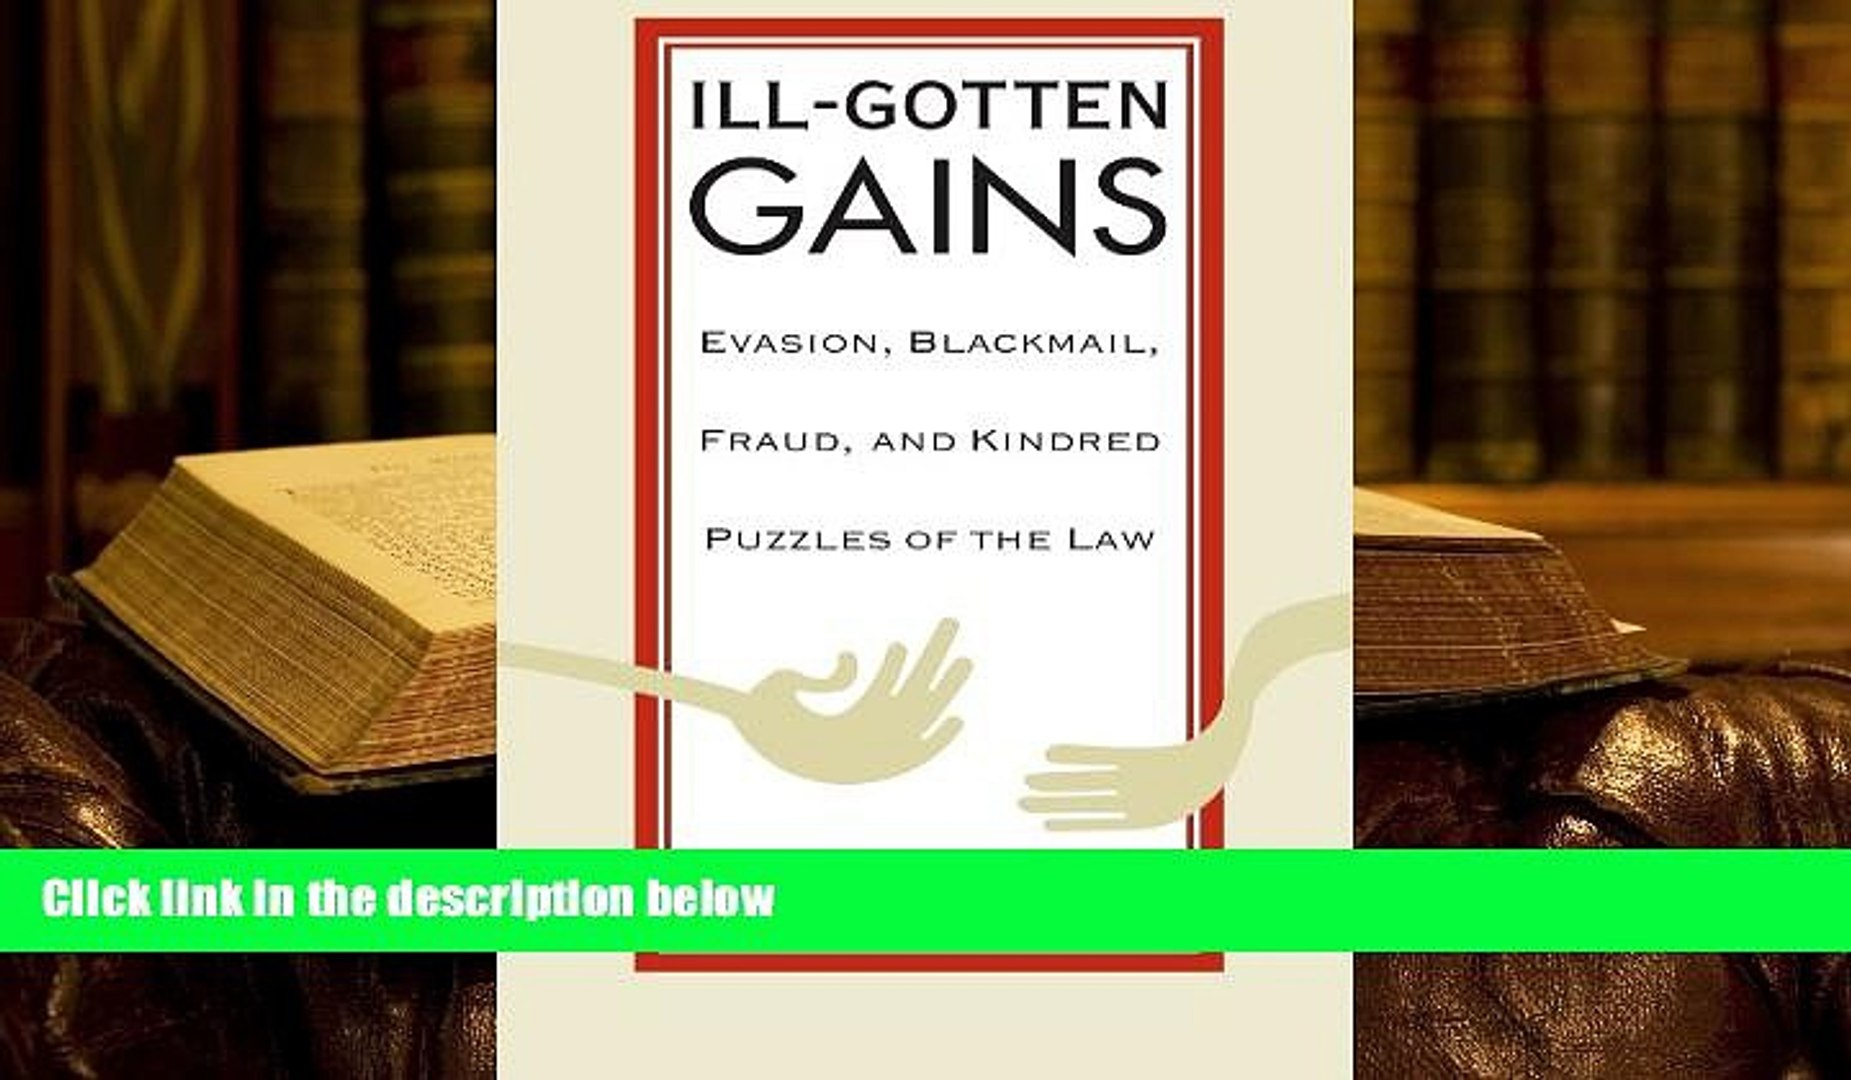 PDF [DOWNLOAD] Ill-Gotten Gains: Evasion, Blackmail, Fraud, and Kindred Puzzles of the Law (Women